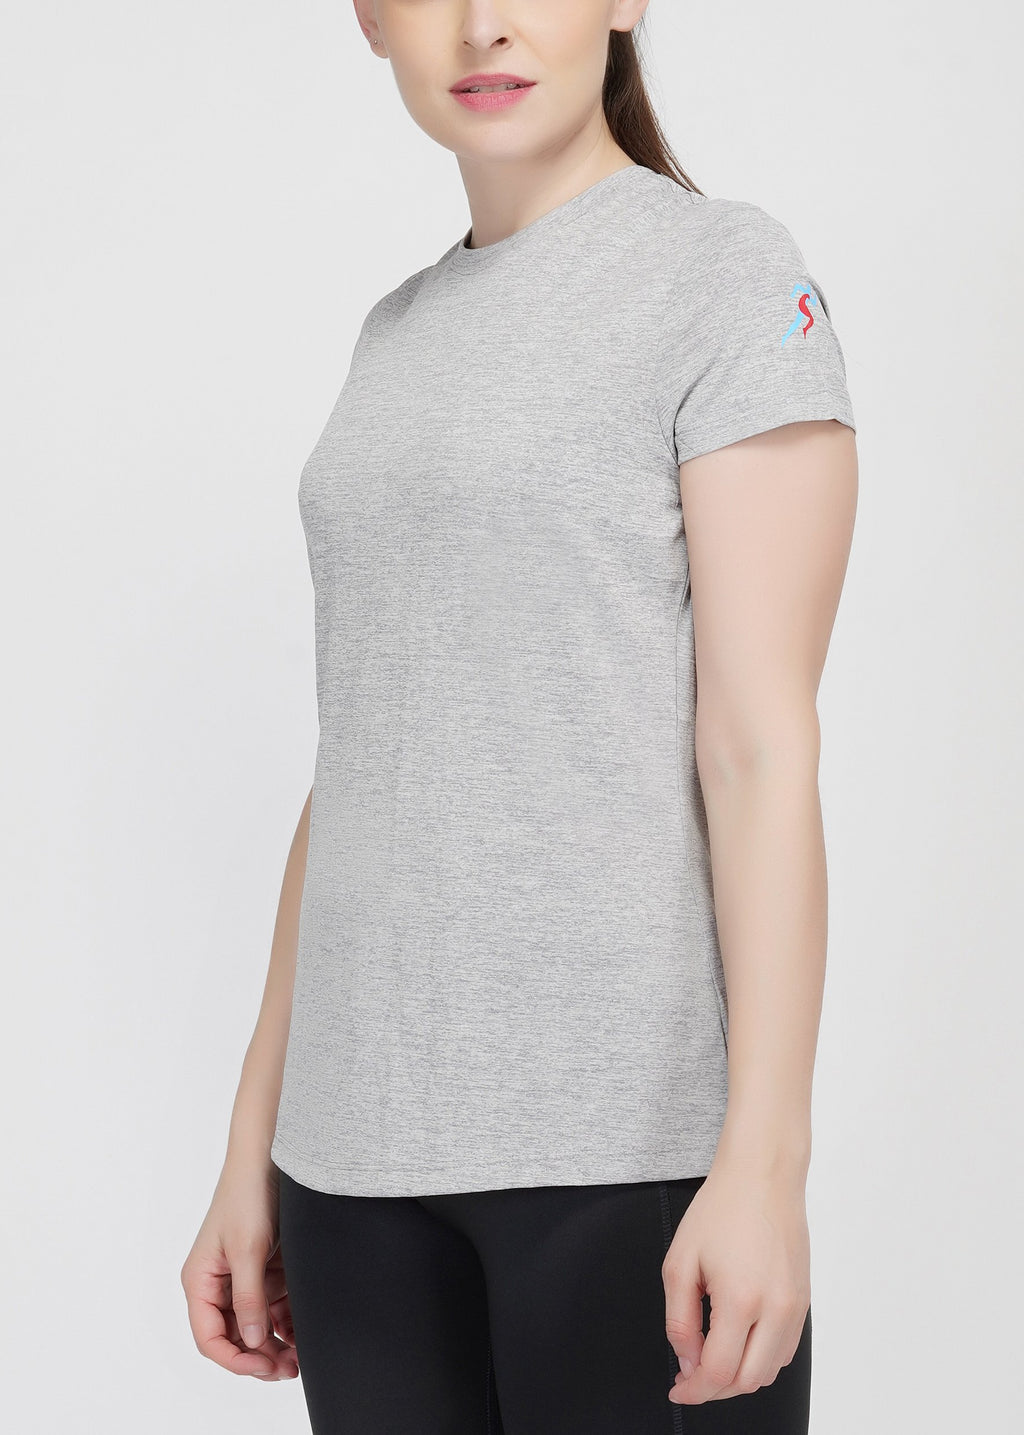 Move Crew T-shirt - Grey Melange